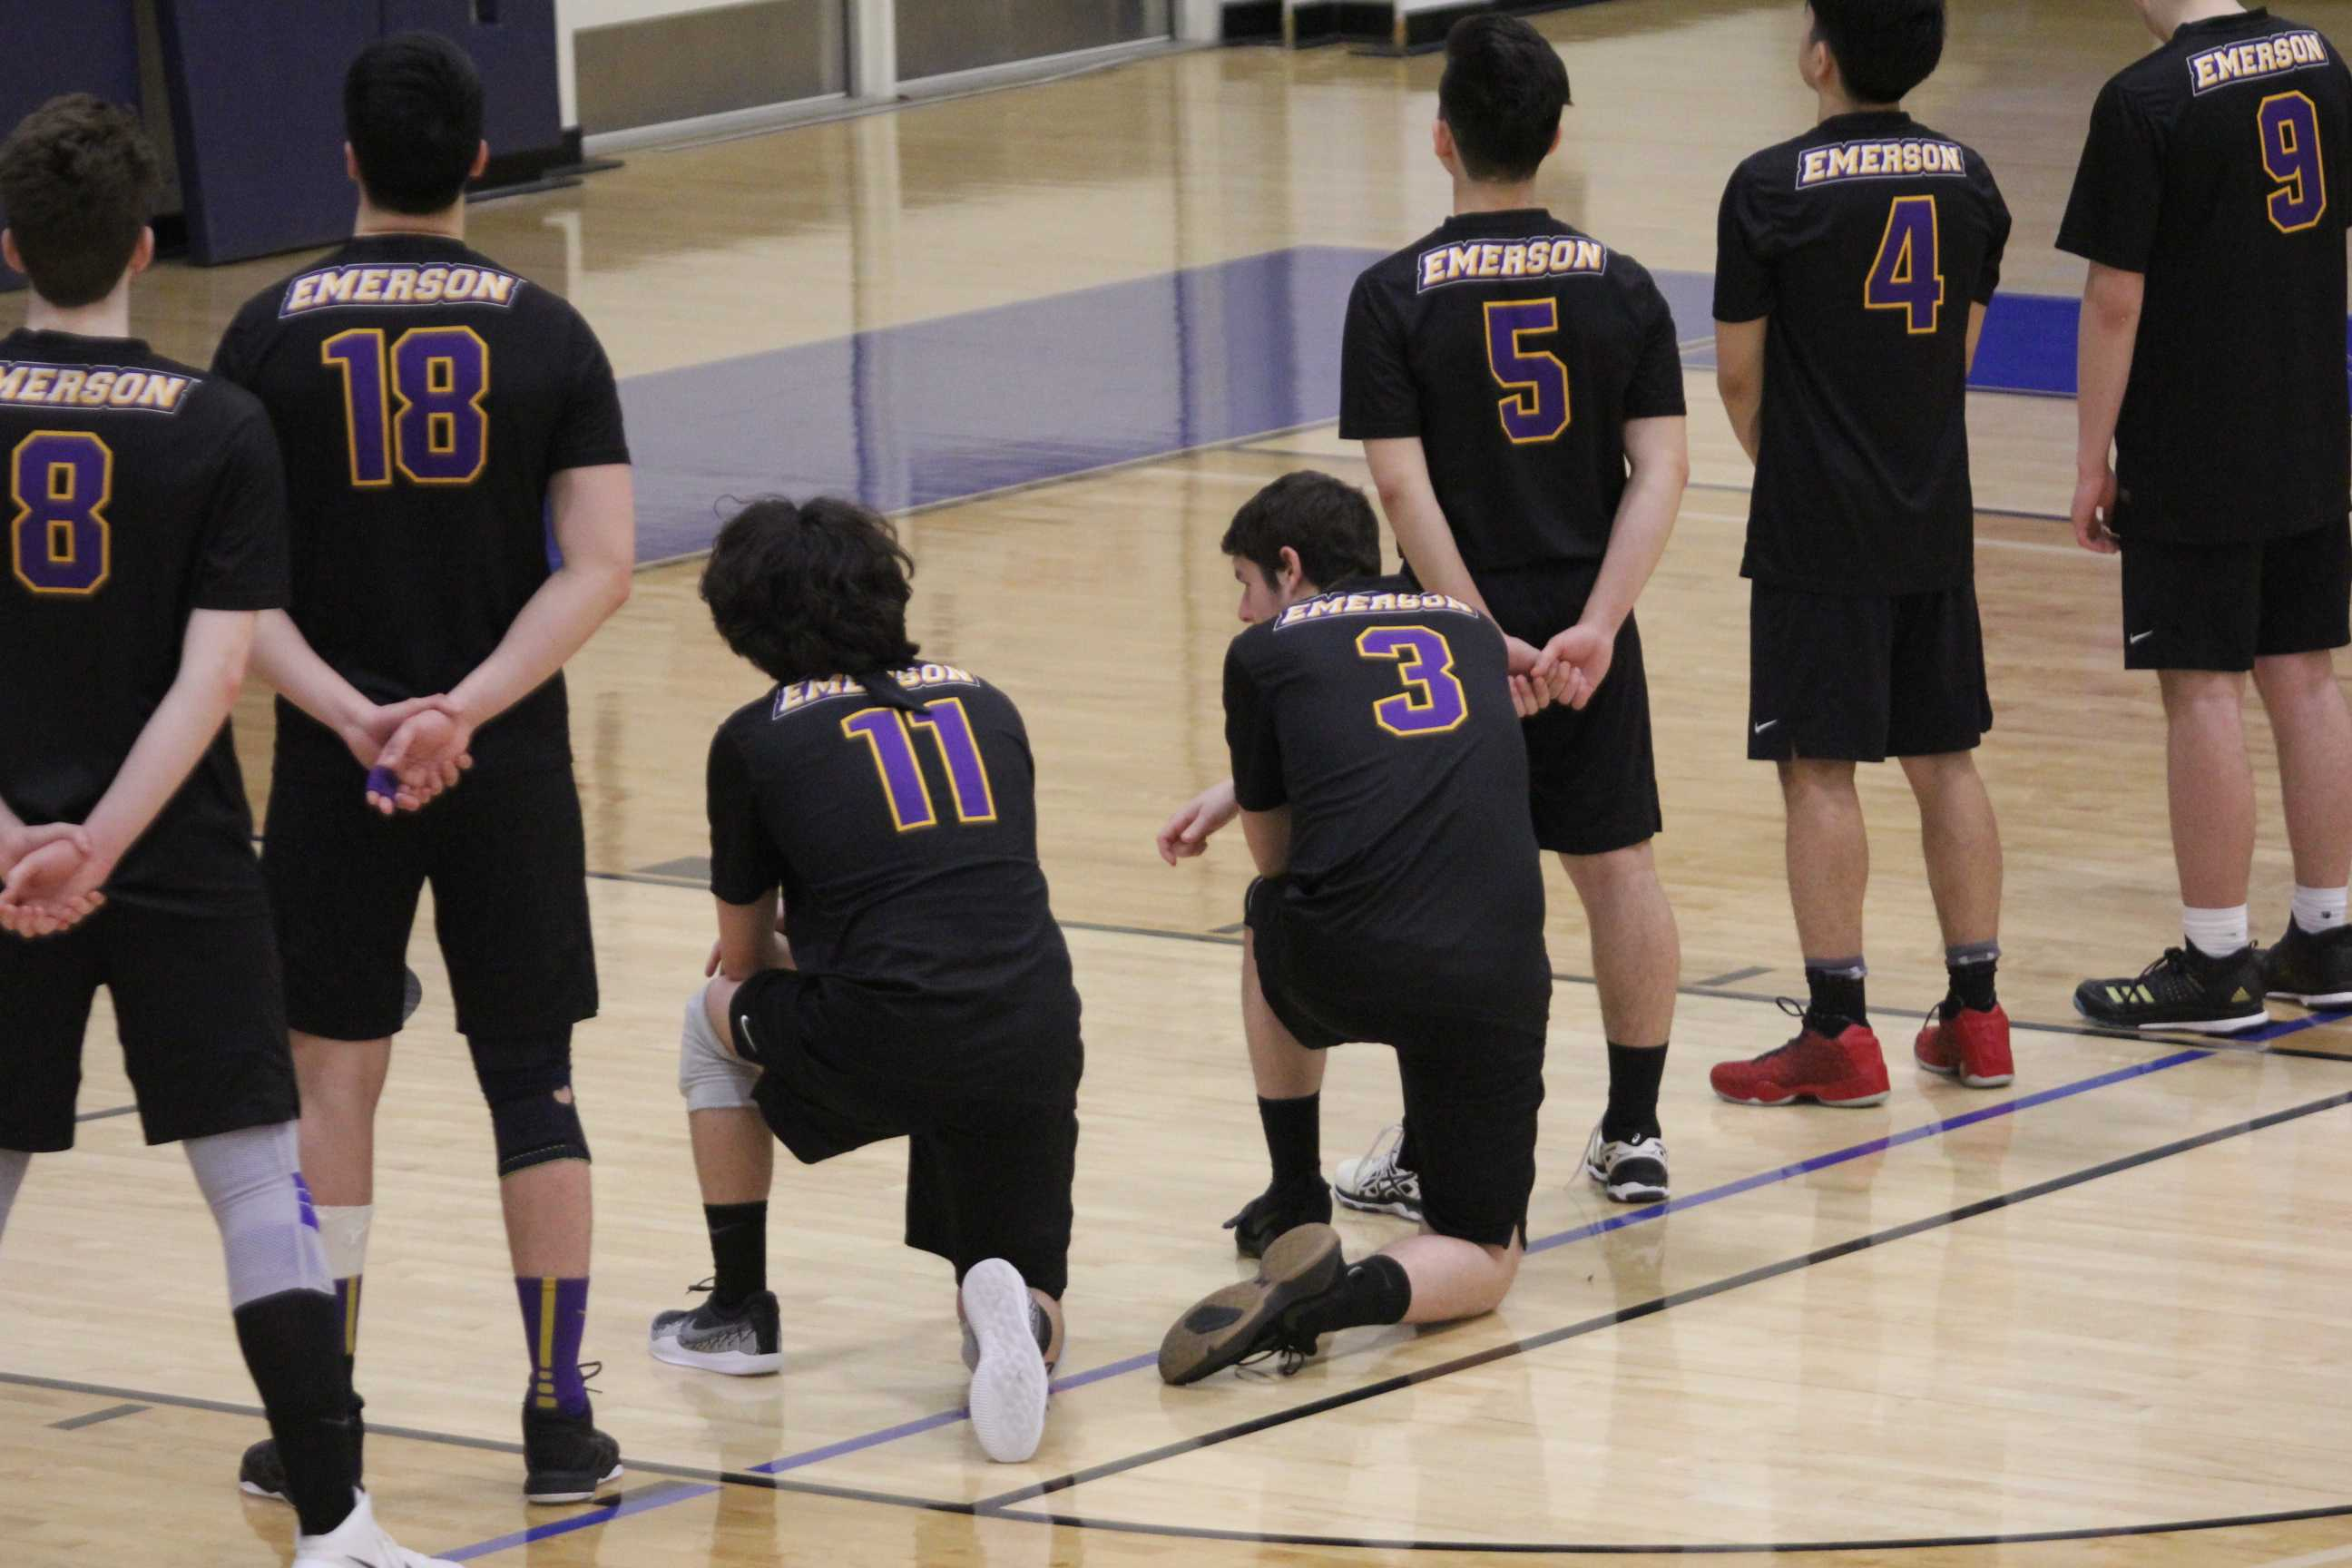 Max Weltz (No. 3) joined Lucas Raagas (No. 11) in kneeling during the Anthem this season. Photo by Aaron J. Miller / Beacon Staff